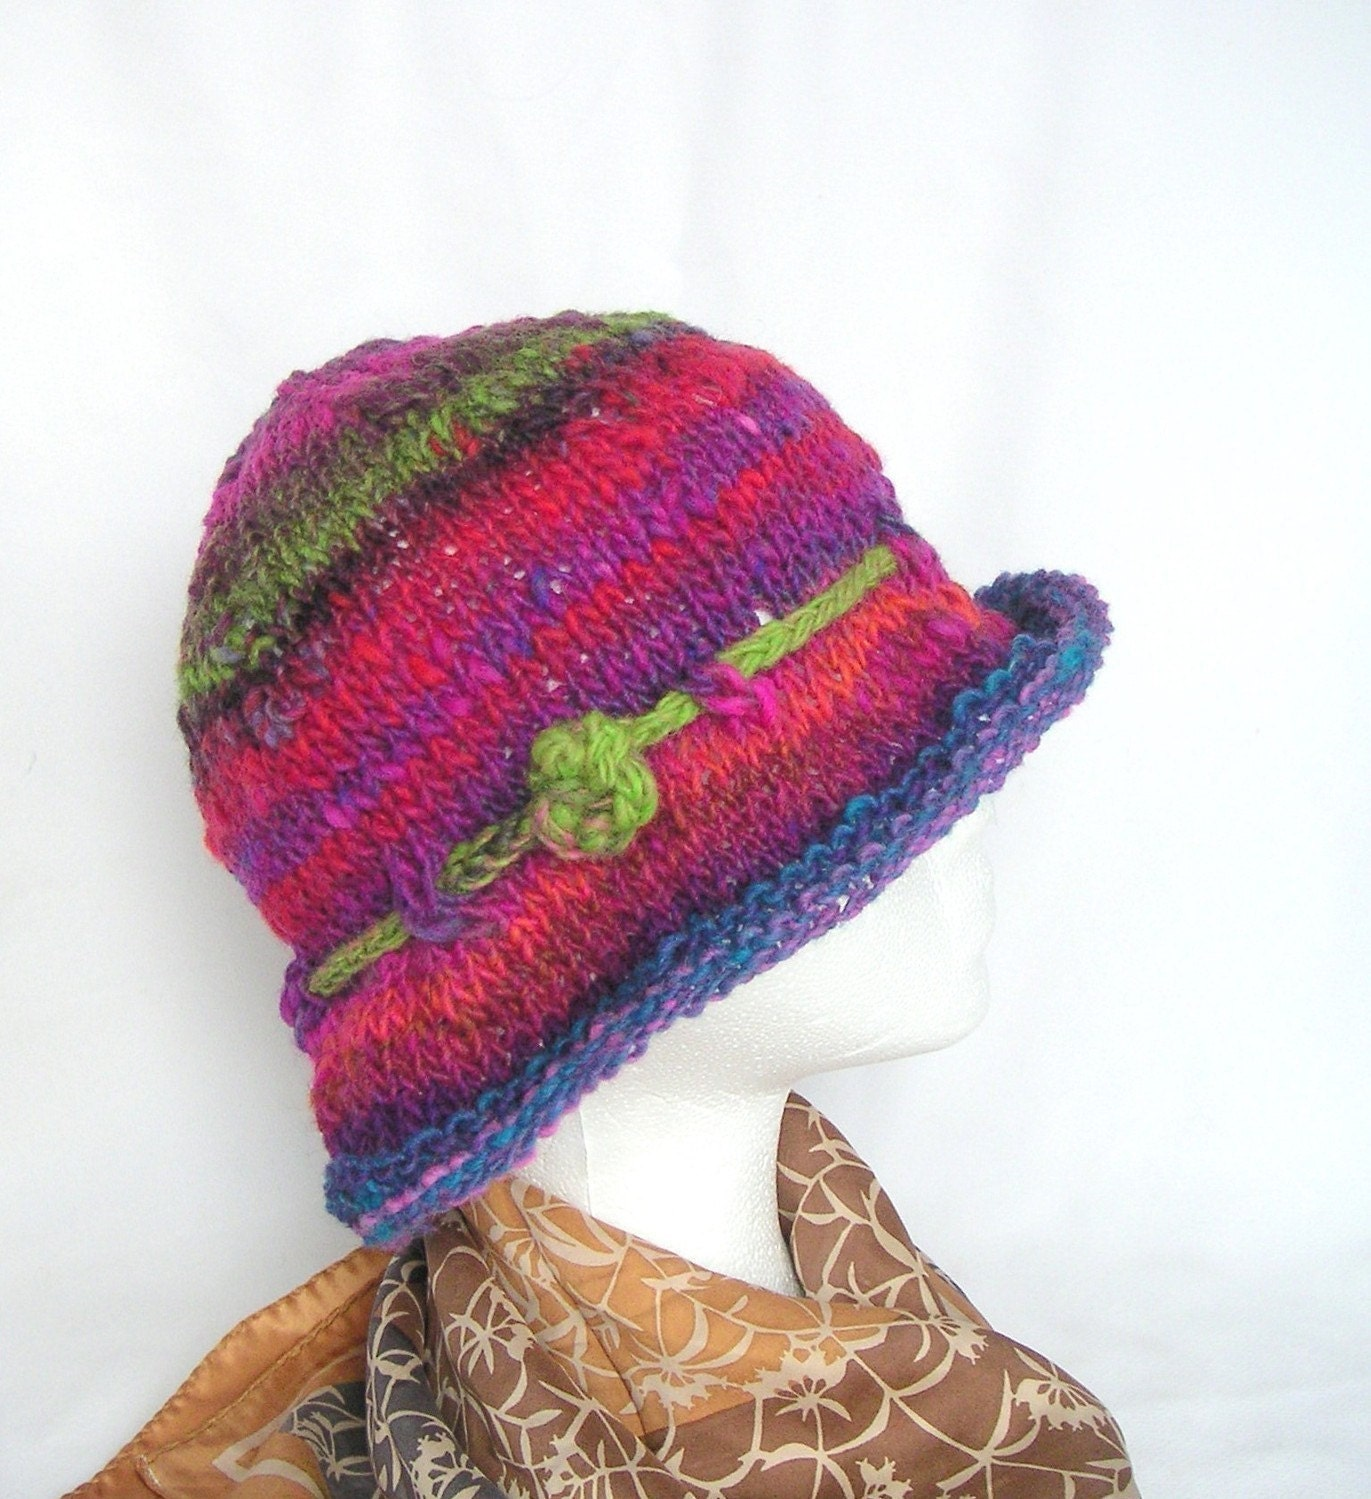 Pattern For Knitting A Hat : EASY KNITTING PATTERNS FOR HATS   Free Patterns